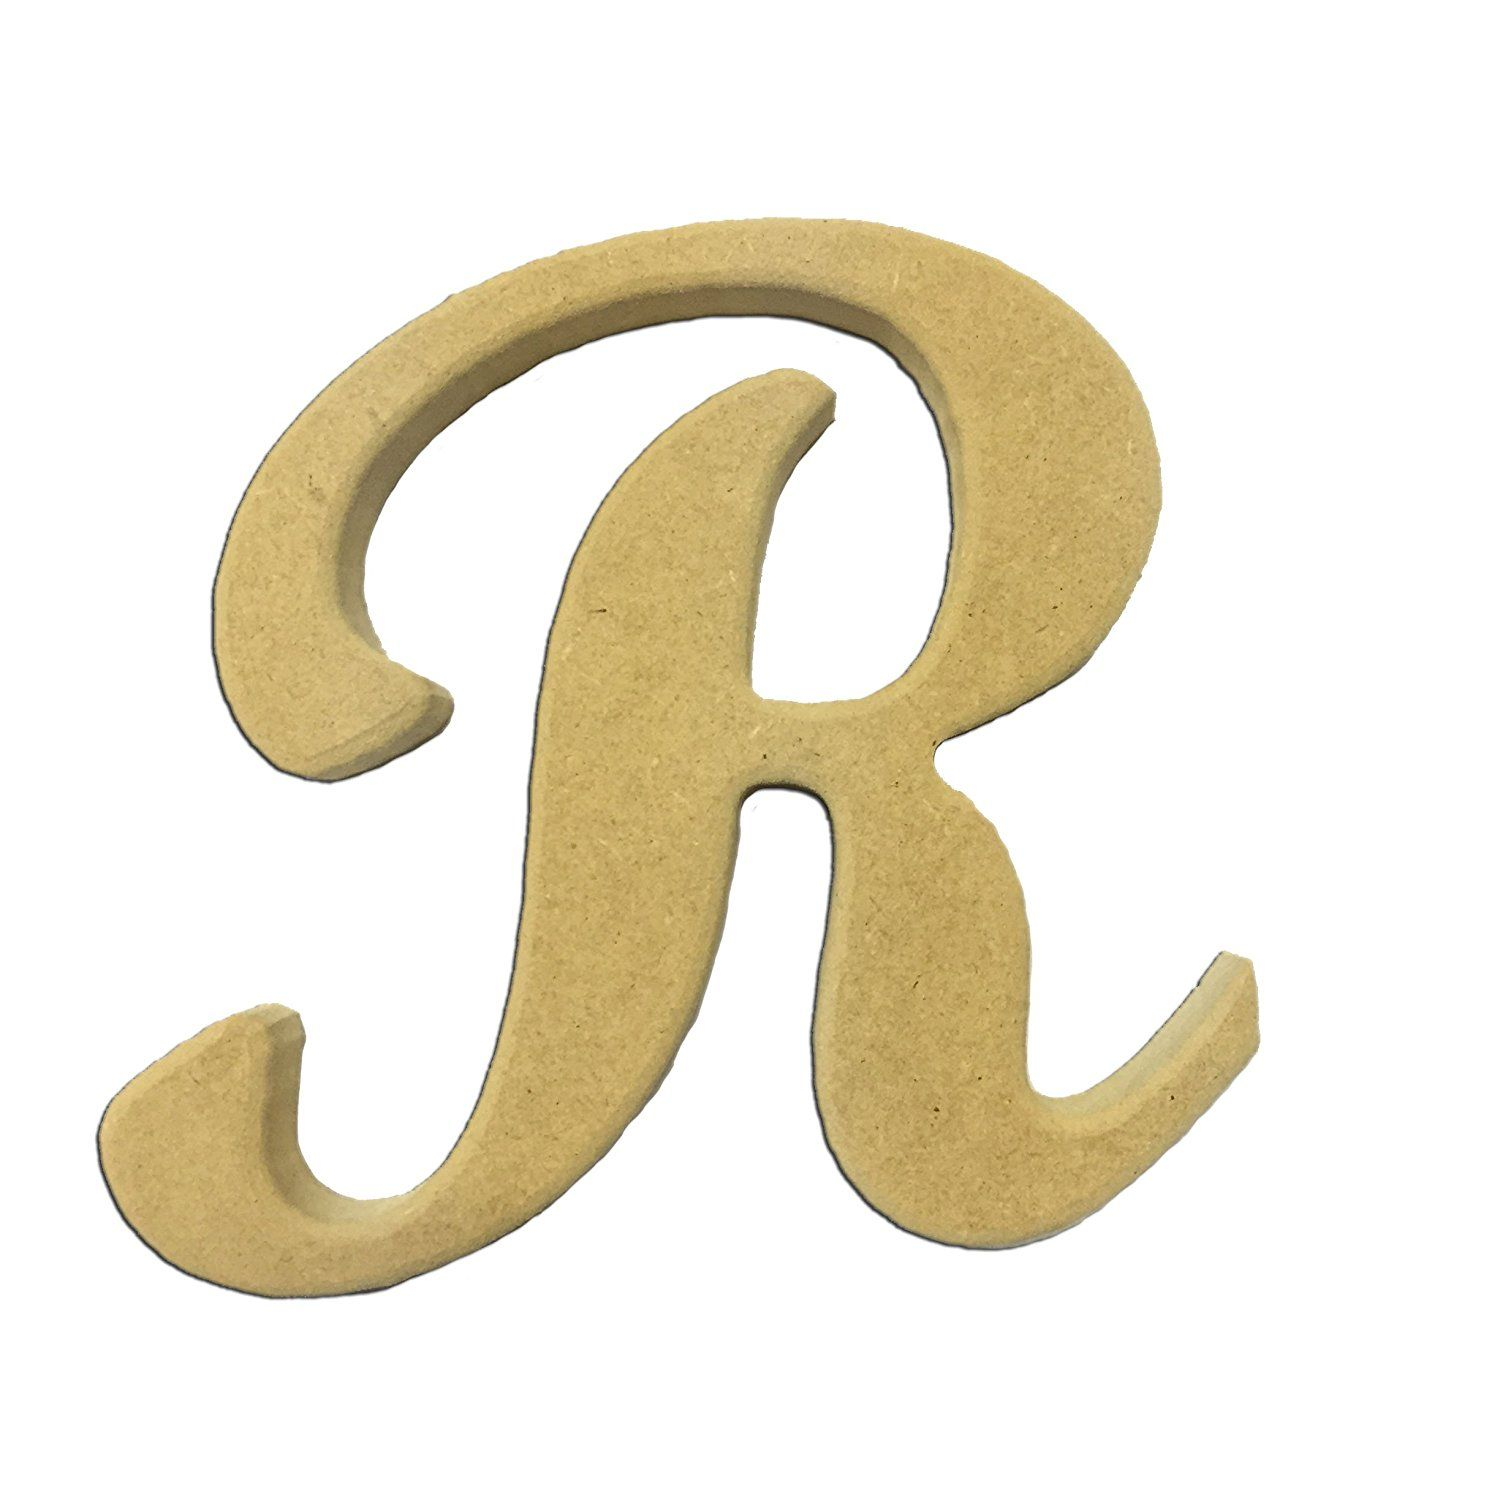 6 Capital Letter R Script Cursive Unfinished Wood Diy Craft Cutout To Sell Ready To Paint Wooden Stacke Wood Crafts Diy Things To Sell Wooden Monogram Letters